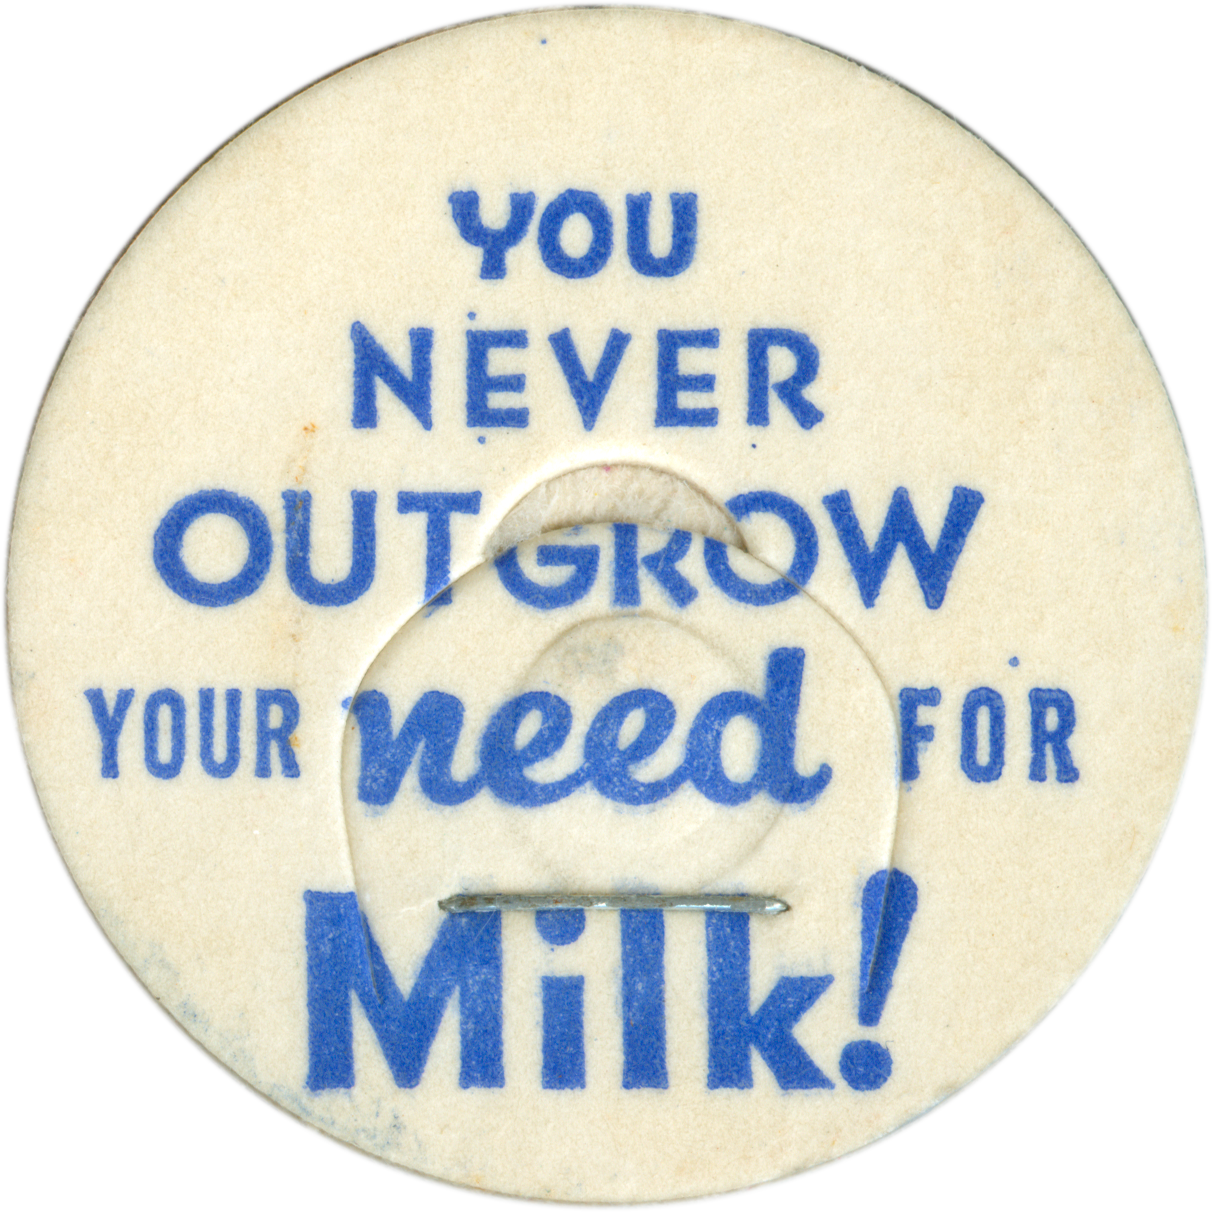 VernacularCircles__0001s_0015_You-Never-Outgrow-Your-Need-for-Milk!.png